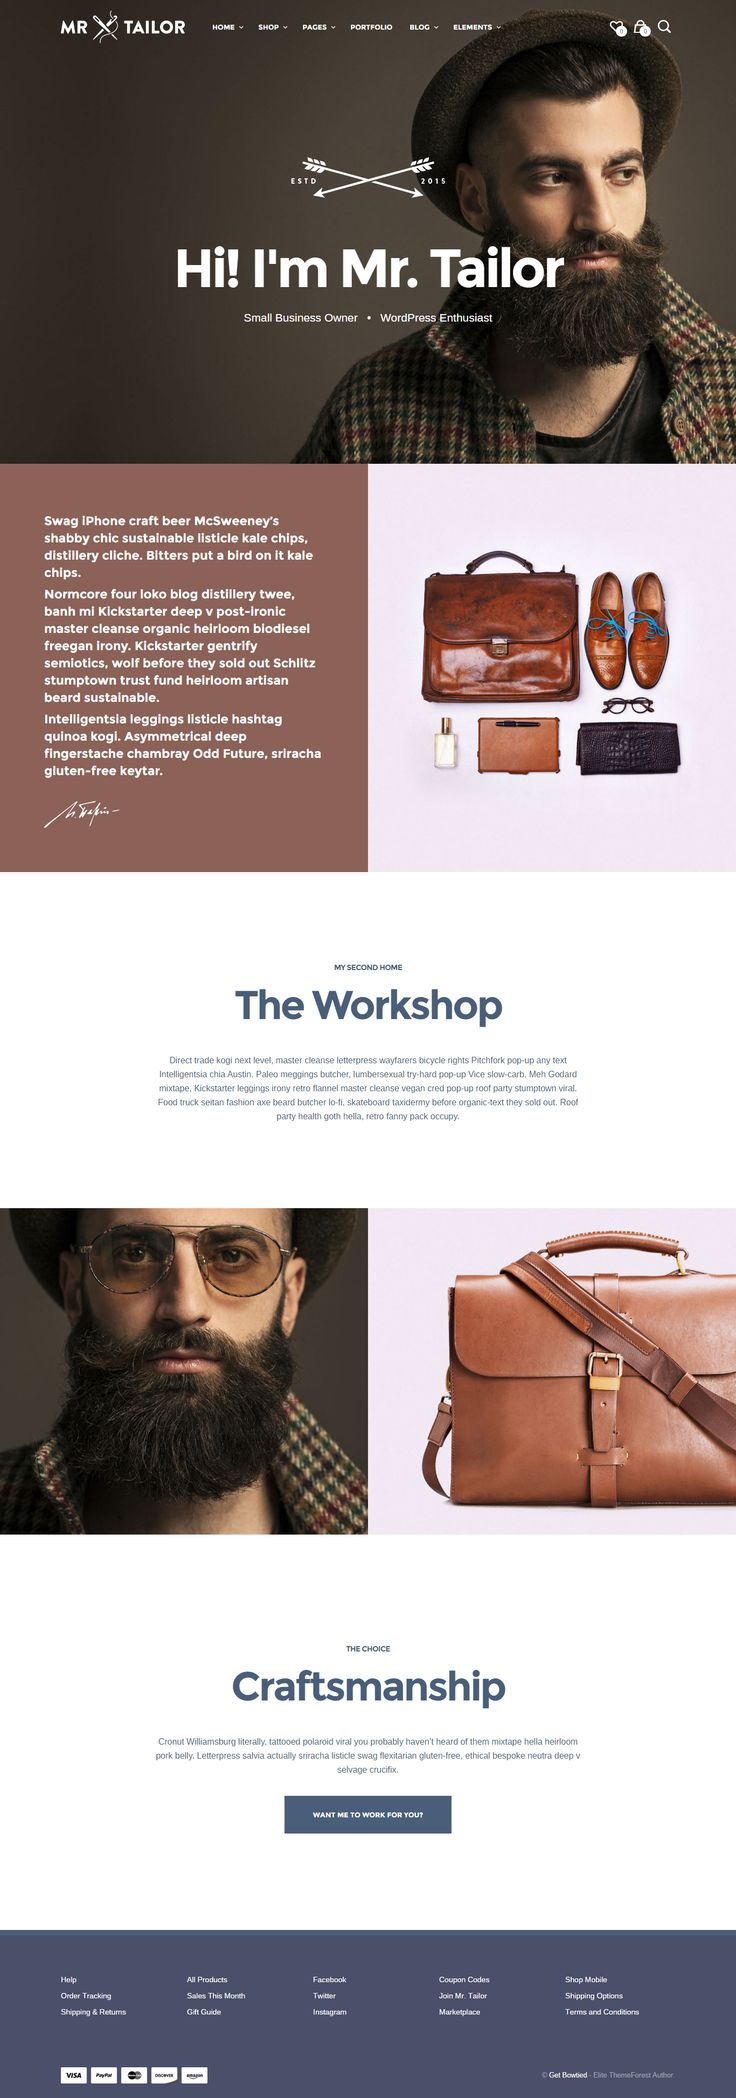 Mr Tailor v 2.0 is live, ready to rock your WordPress eCommerce world!  http://themeforest.net/item/mr-tailor-responsive-woocommerce-theme/7292110  #wordpress #webdesign #clean #minimalist #ecommerce #wordpressthemes #hipster #design #coolwebsites